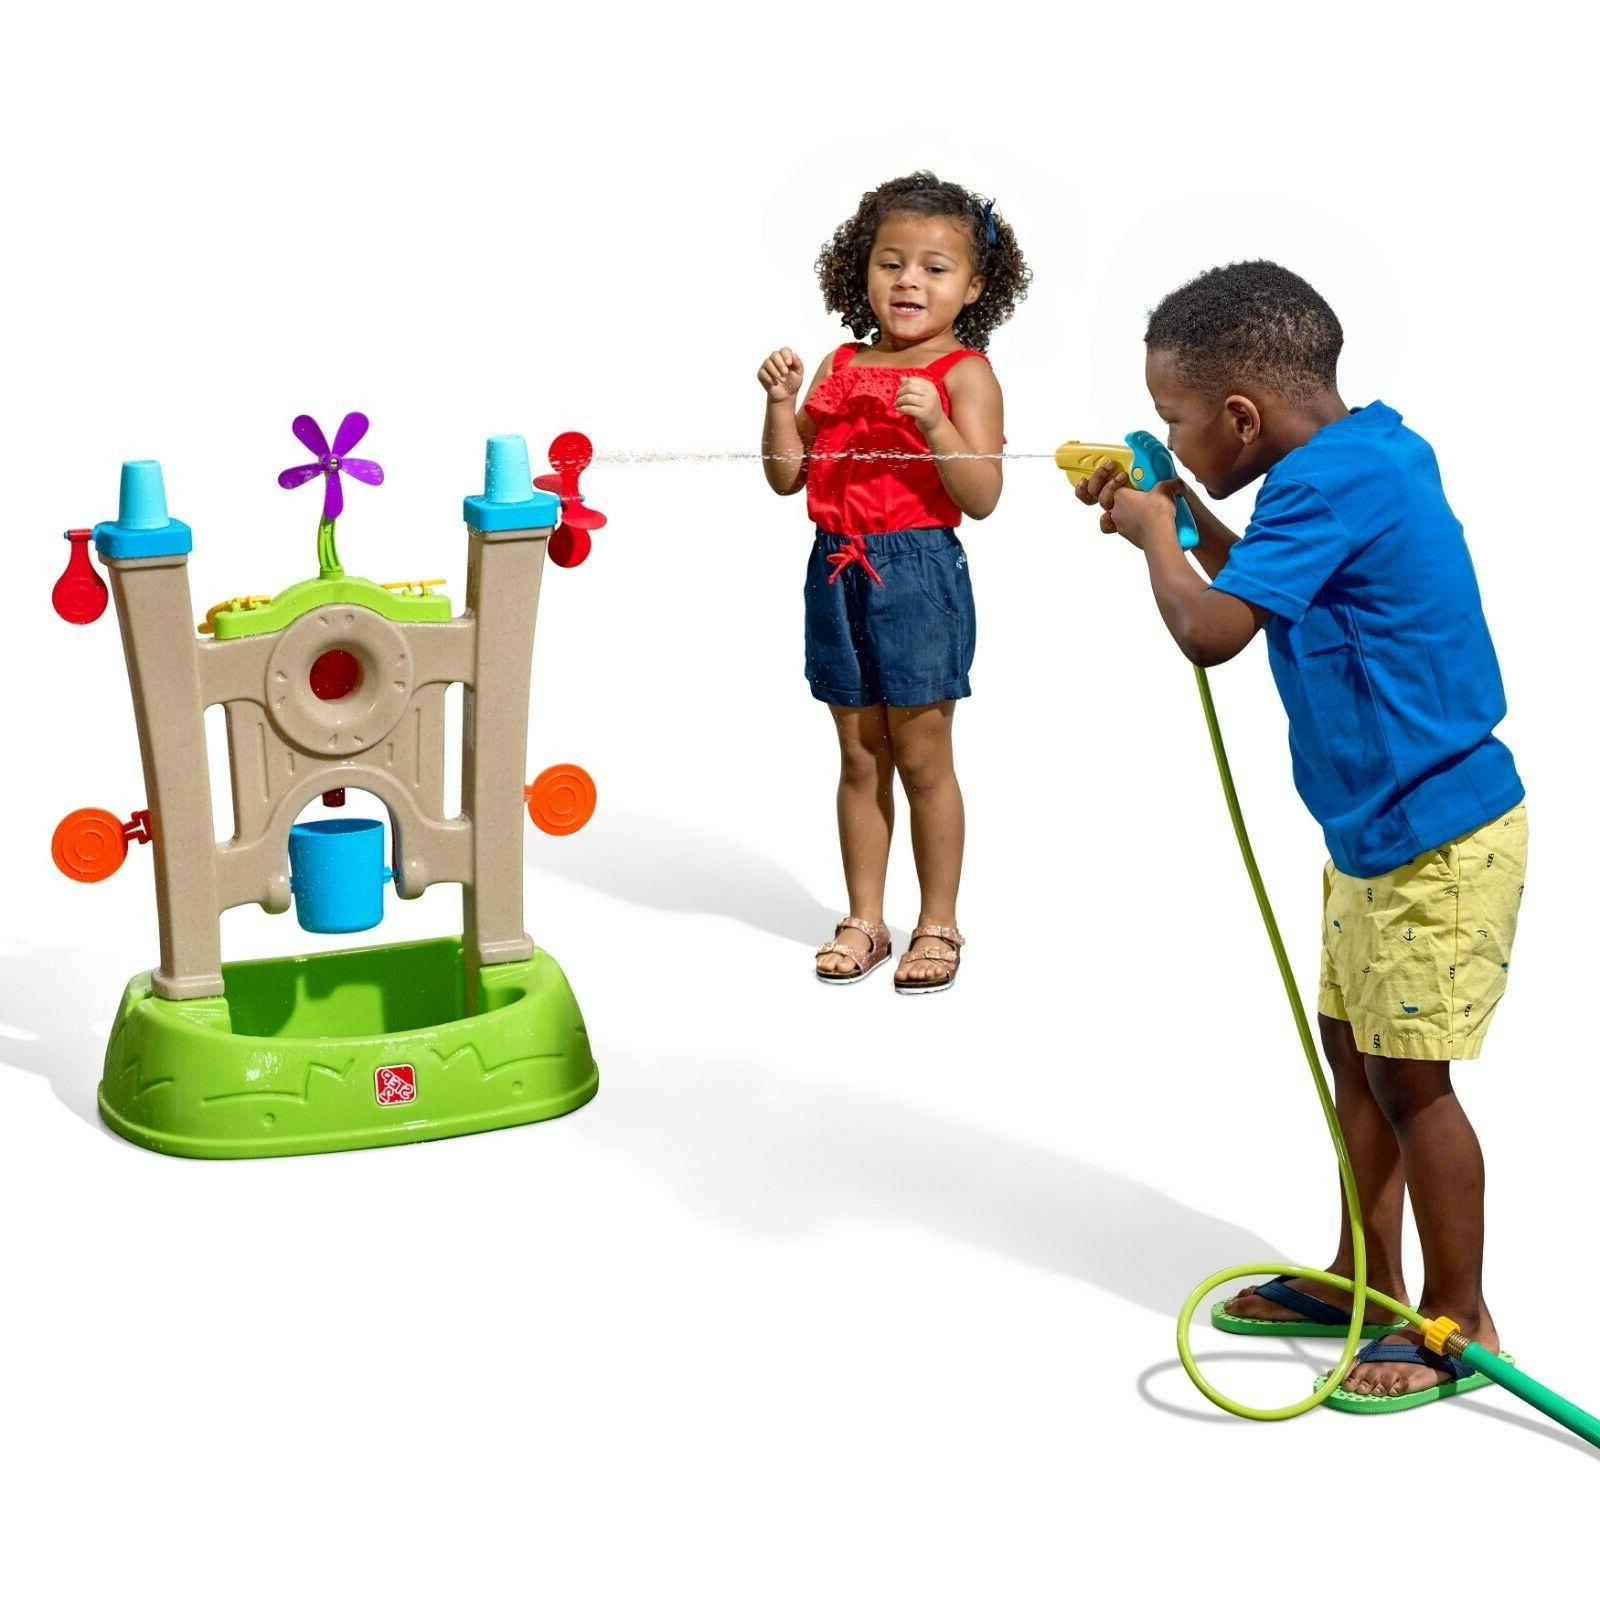 Step2 Table Toy Outdoor Activity US